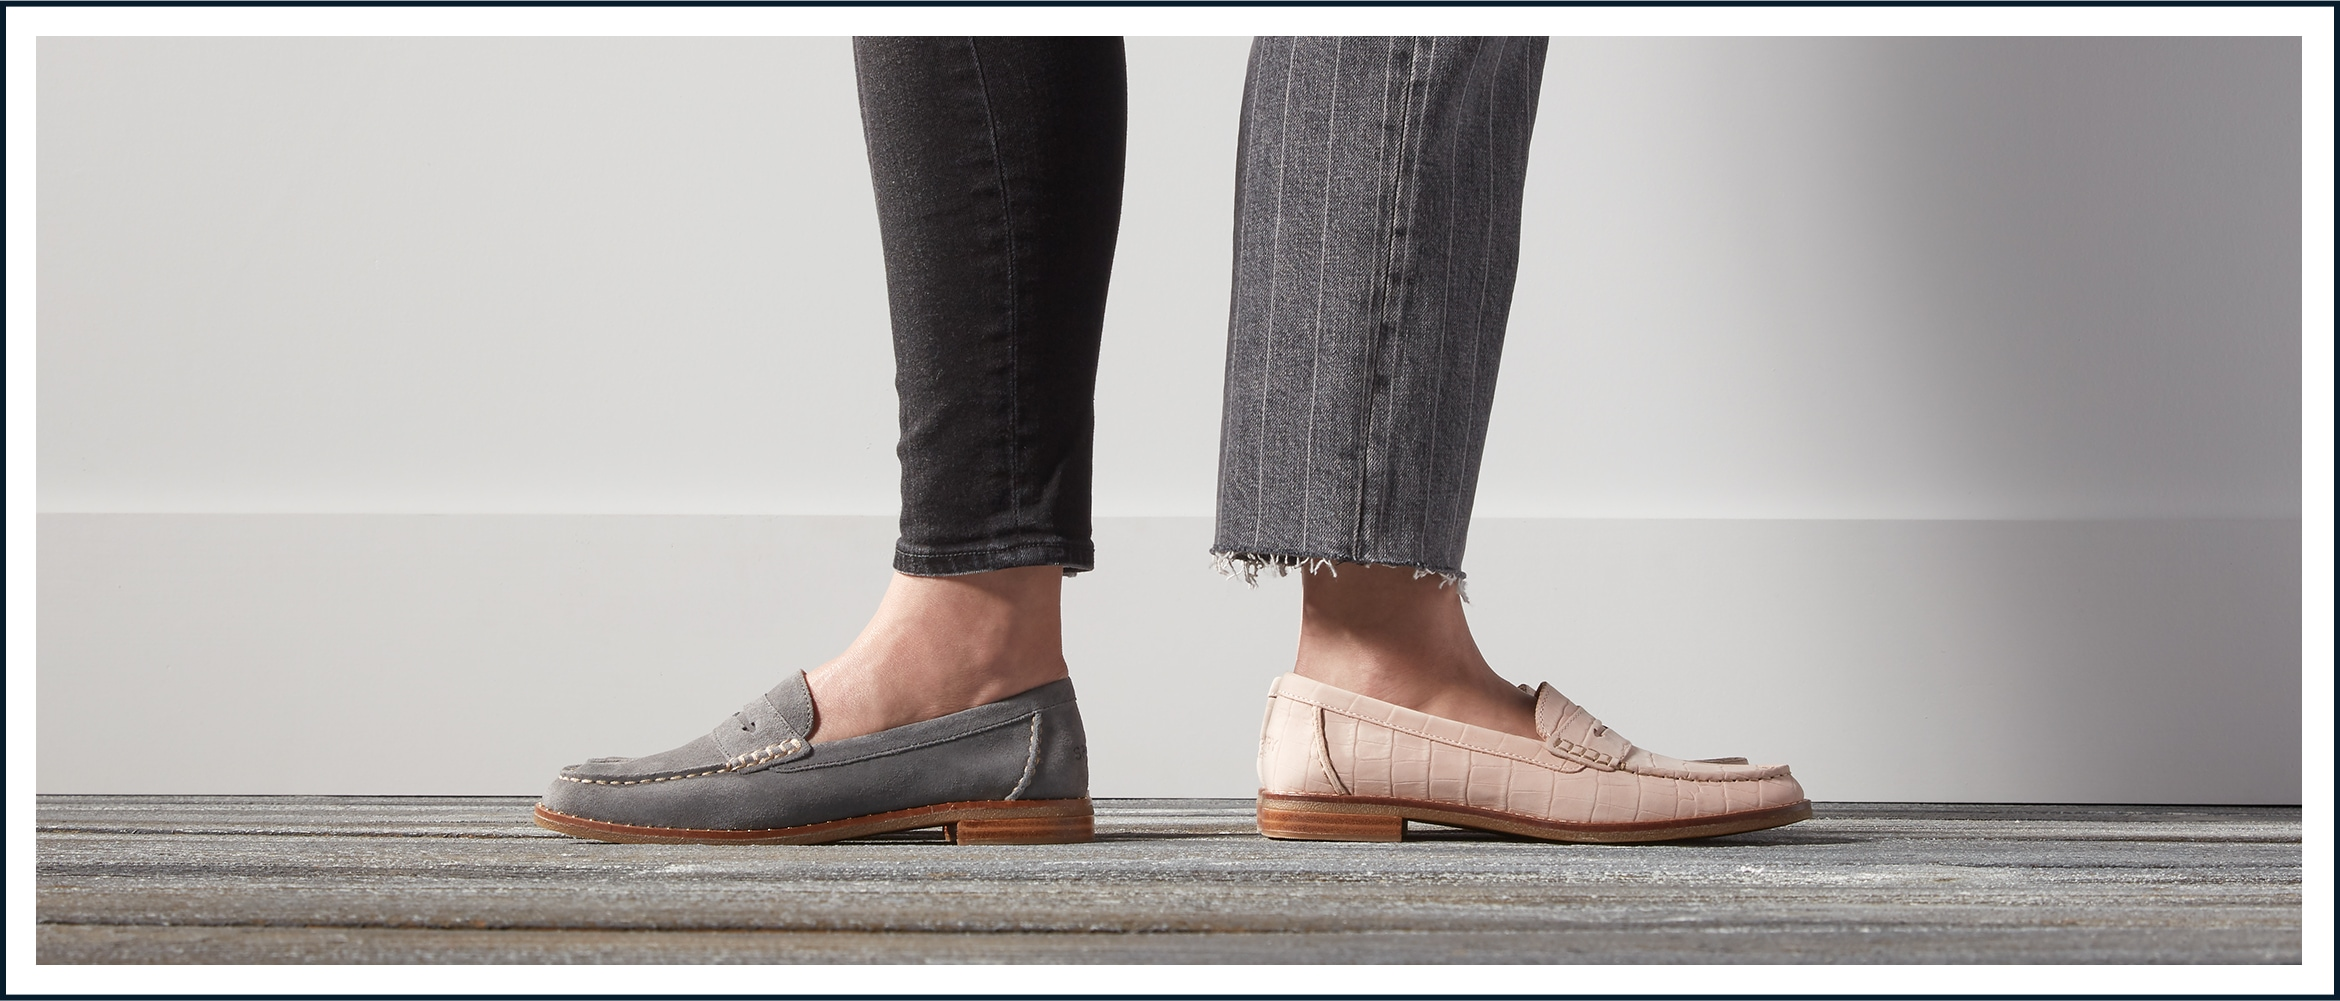 A closeup of two women's feet wearing different Seaport Penny Loafer styles.